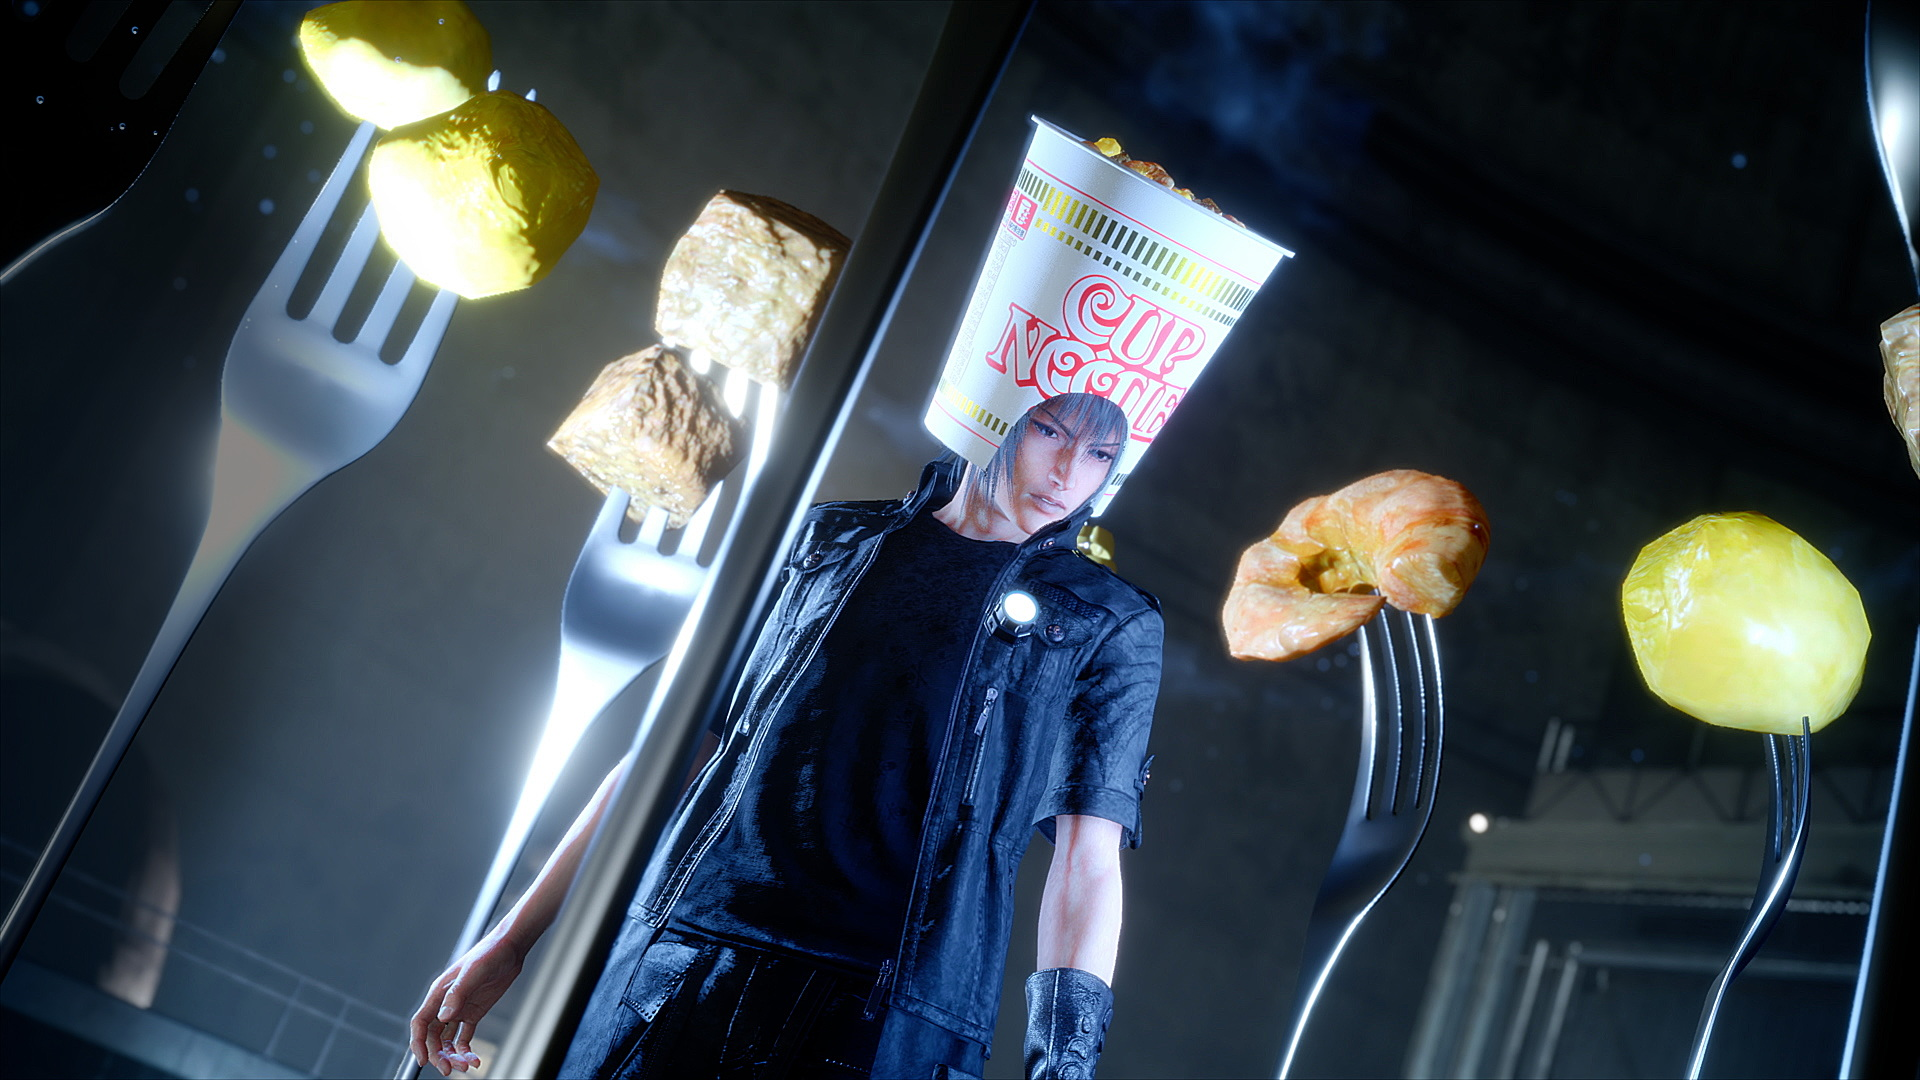 Final Fantasy XV is Getting a Cup Noodle Helmet for Noctis